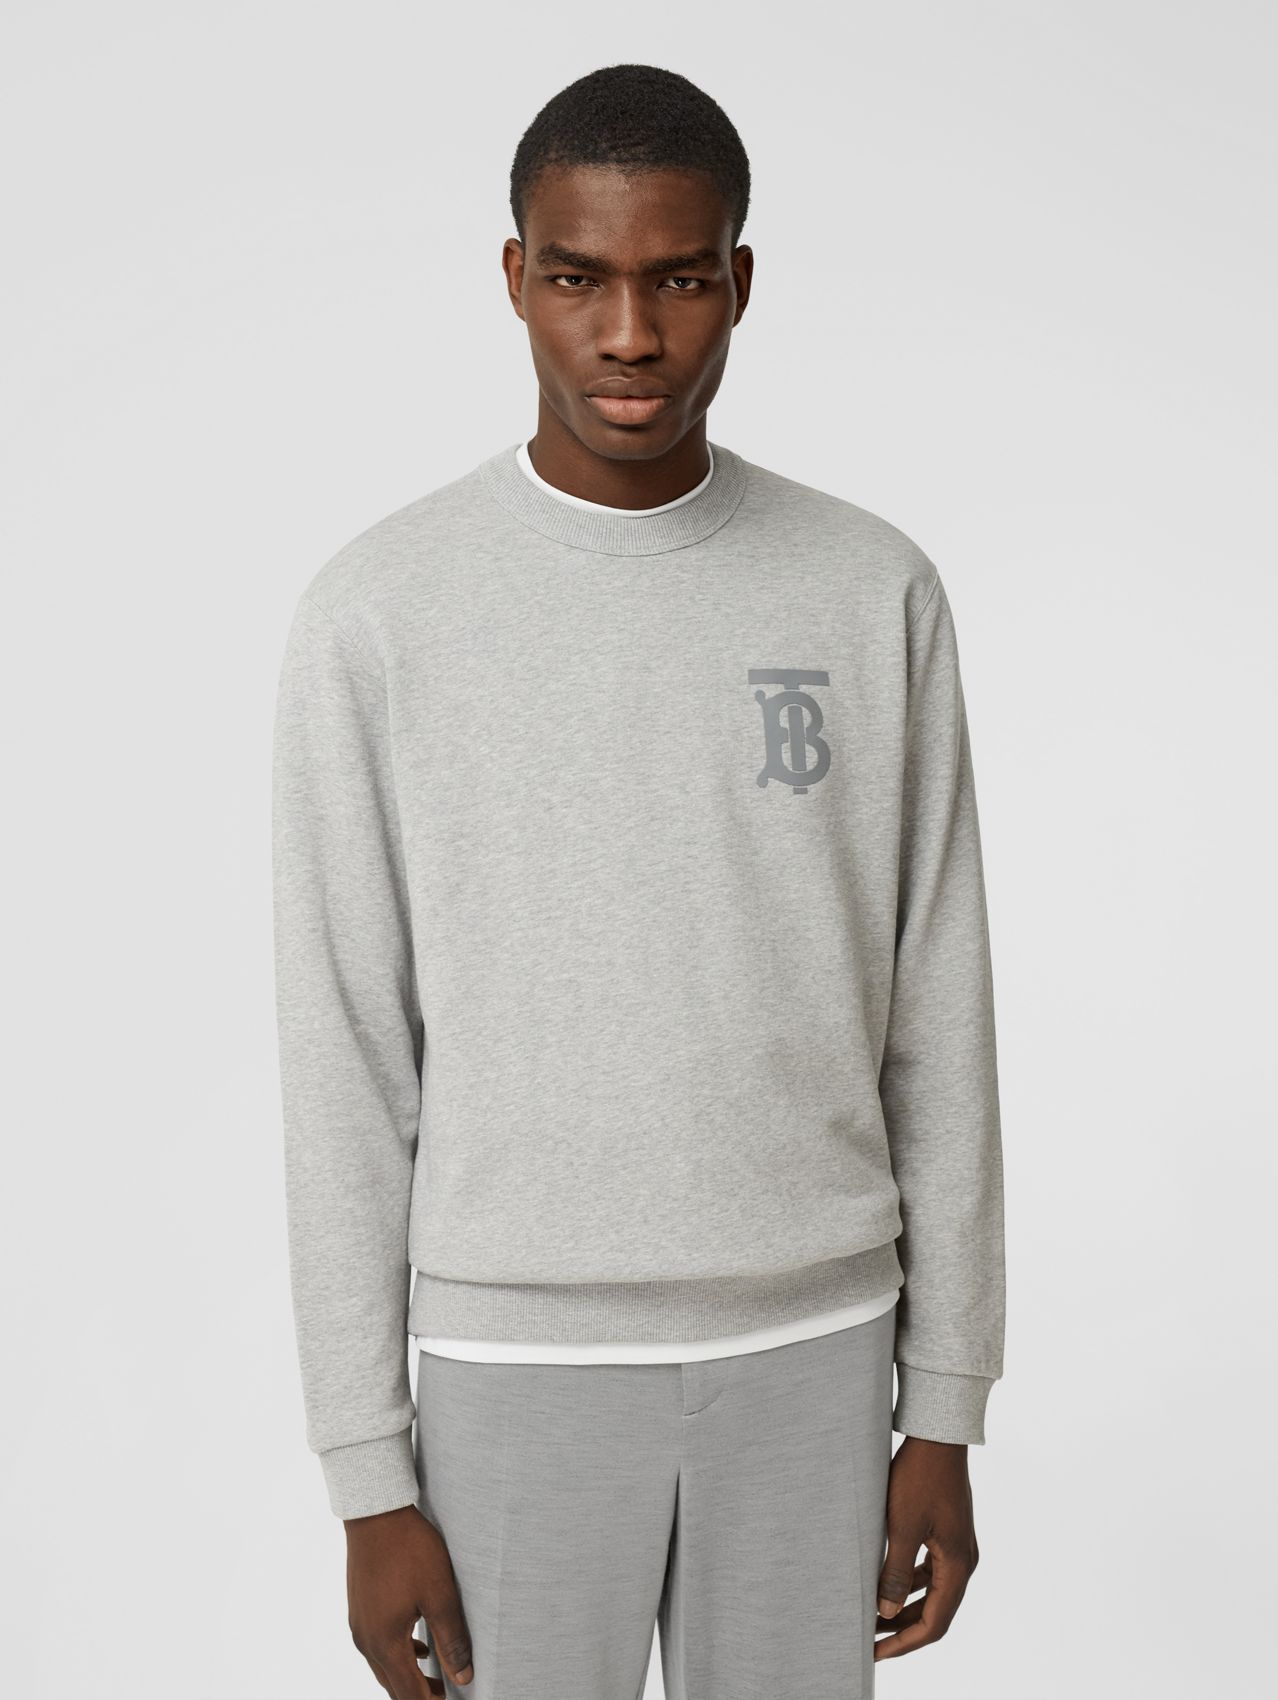 Monogram Motif Cotton Sweatshirt in Pale Grey Melange